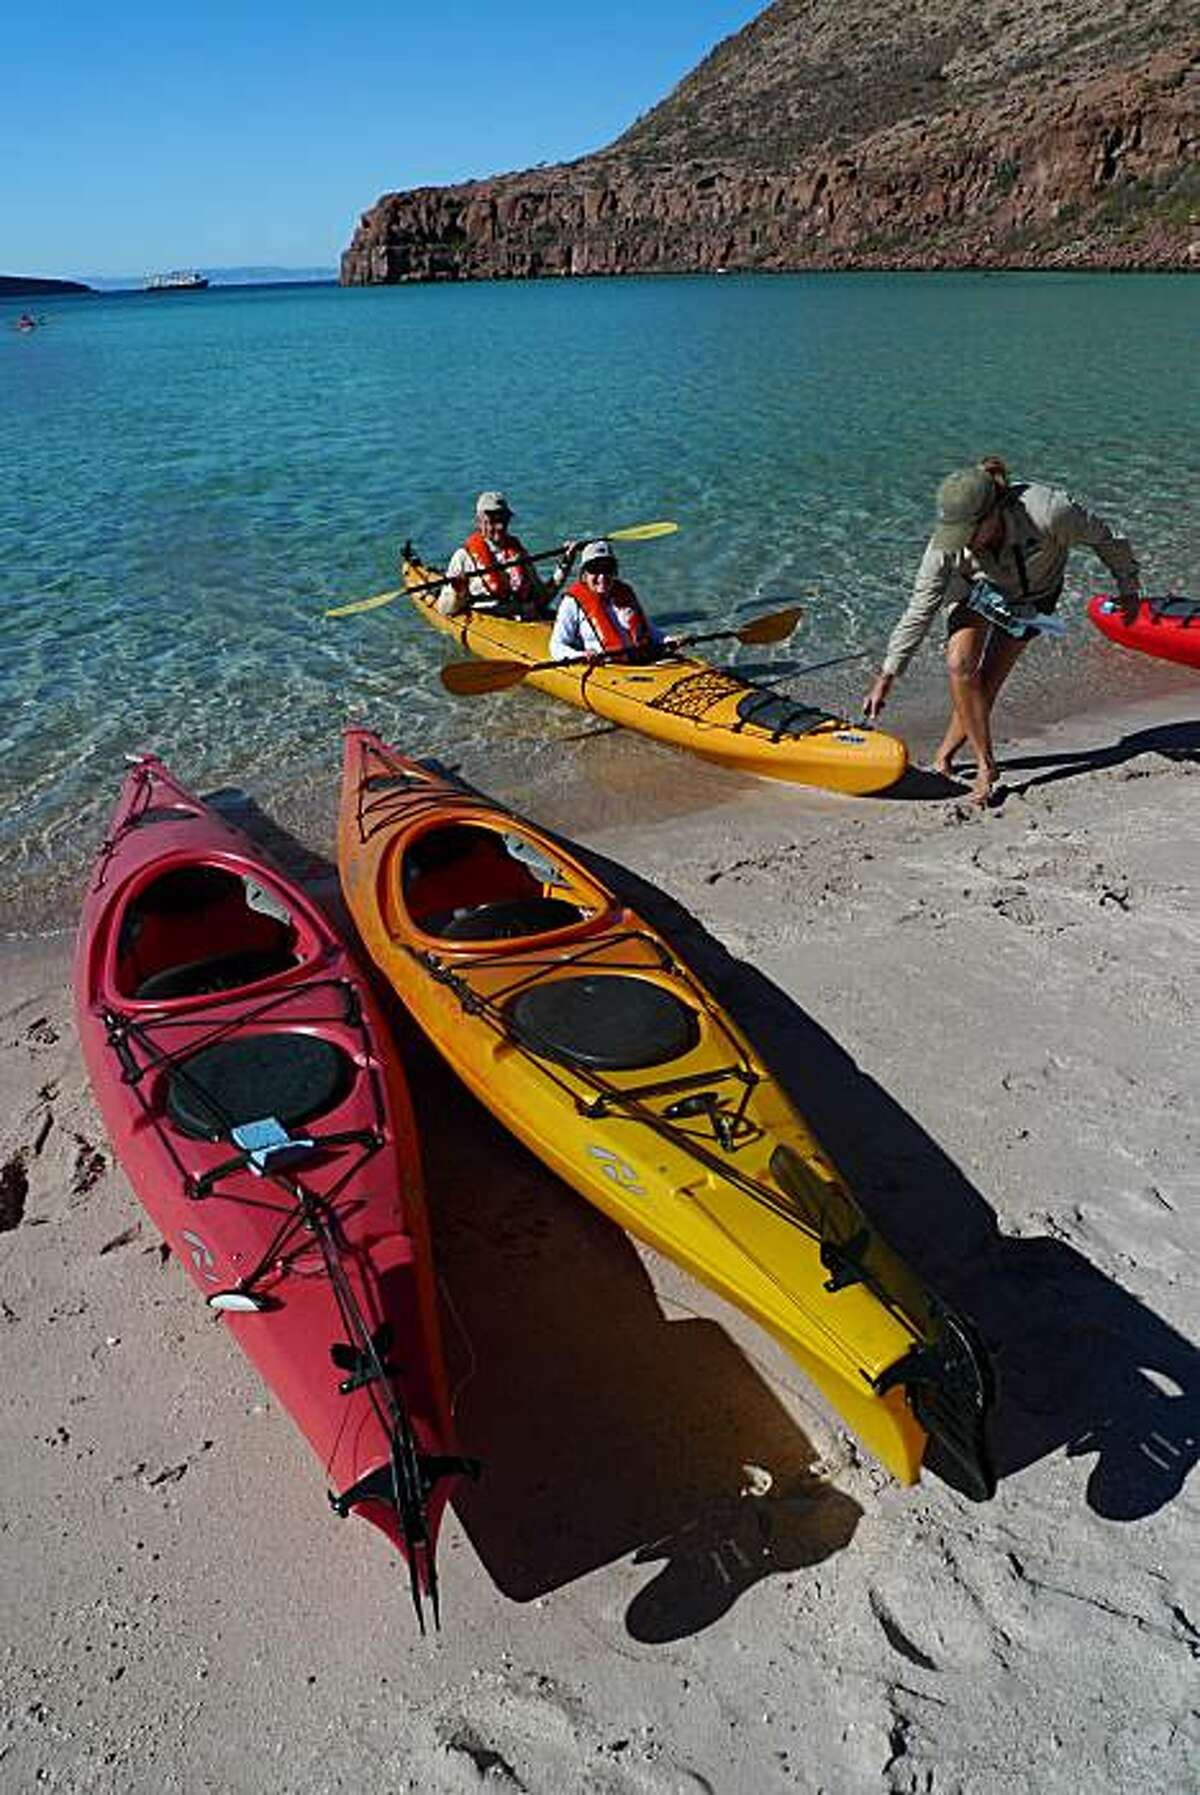 Passengers from the National Geographic Sea Bird land on the beach after kayaking around Ensenada Grande on Espiritu Santo island in the Sea of Cortez.